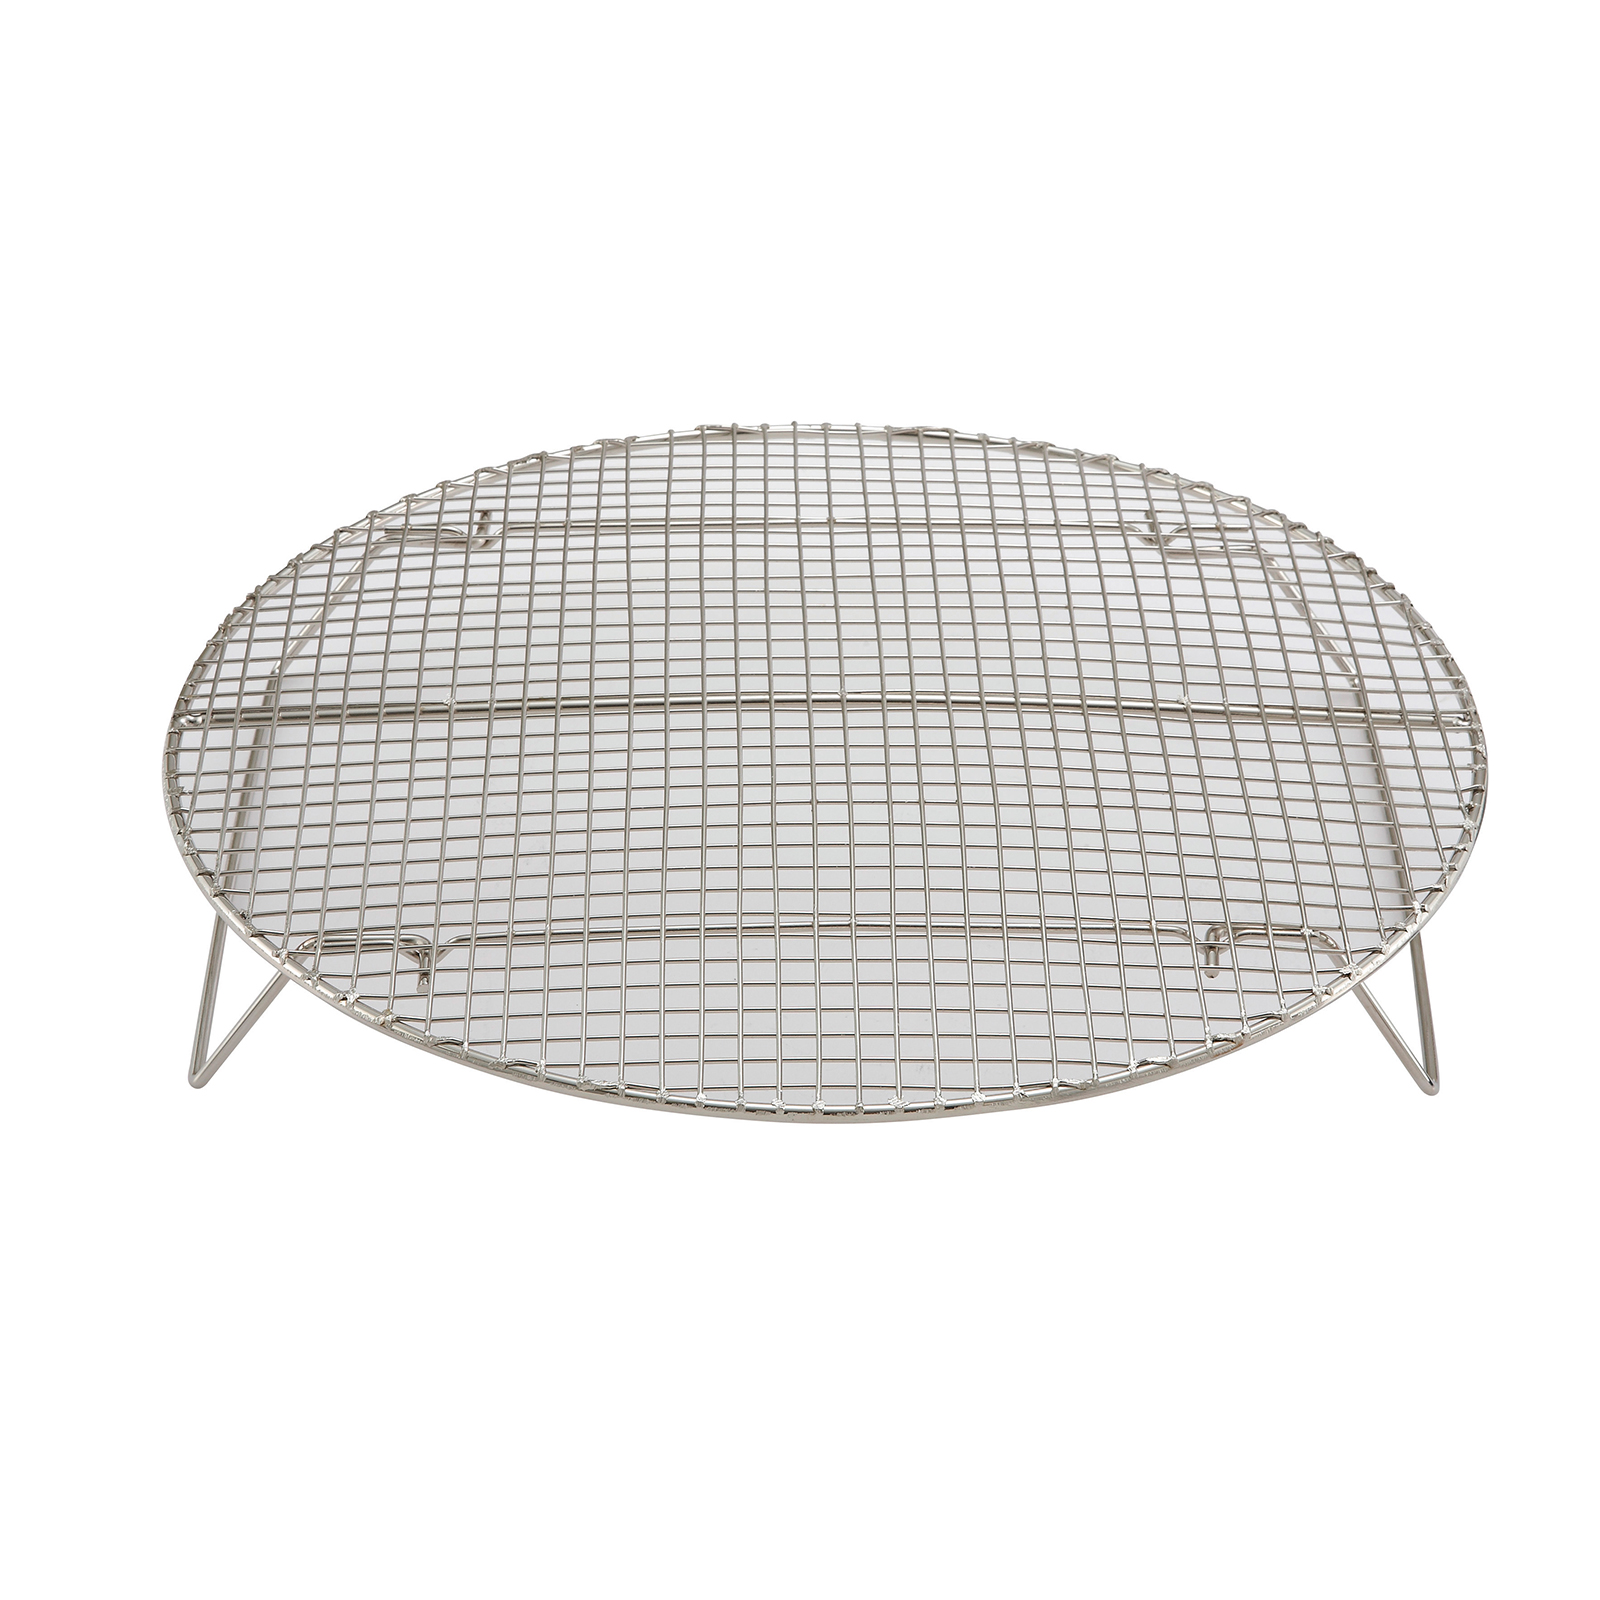 Winco STR-13 wire pan rack / grate